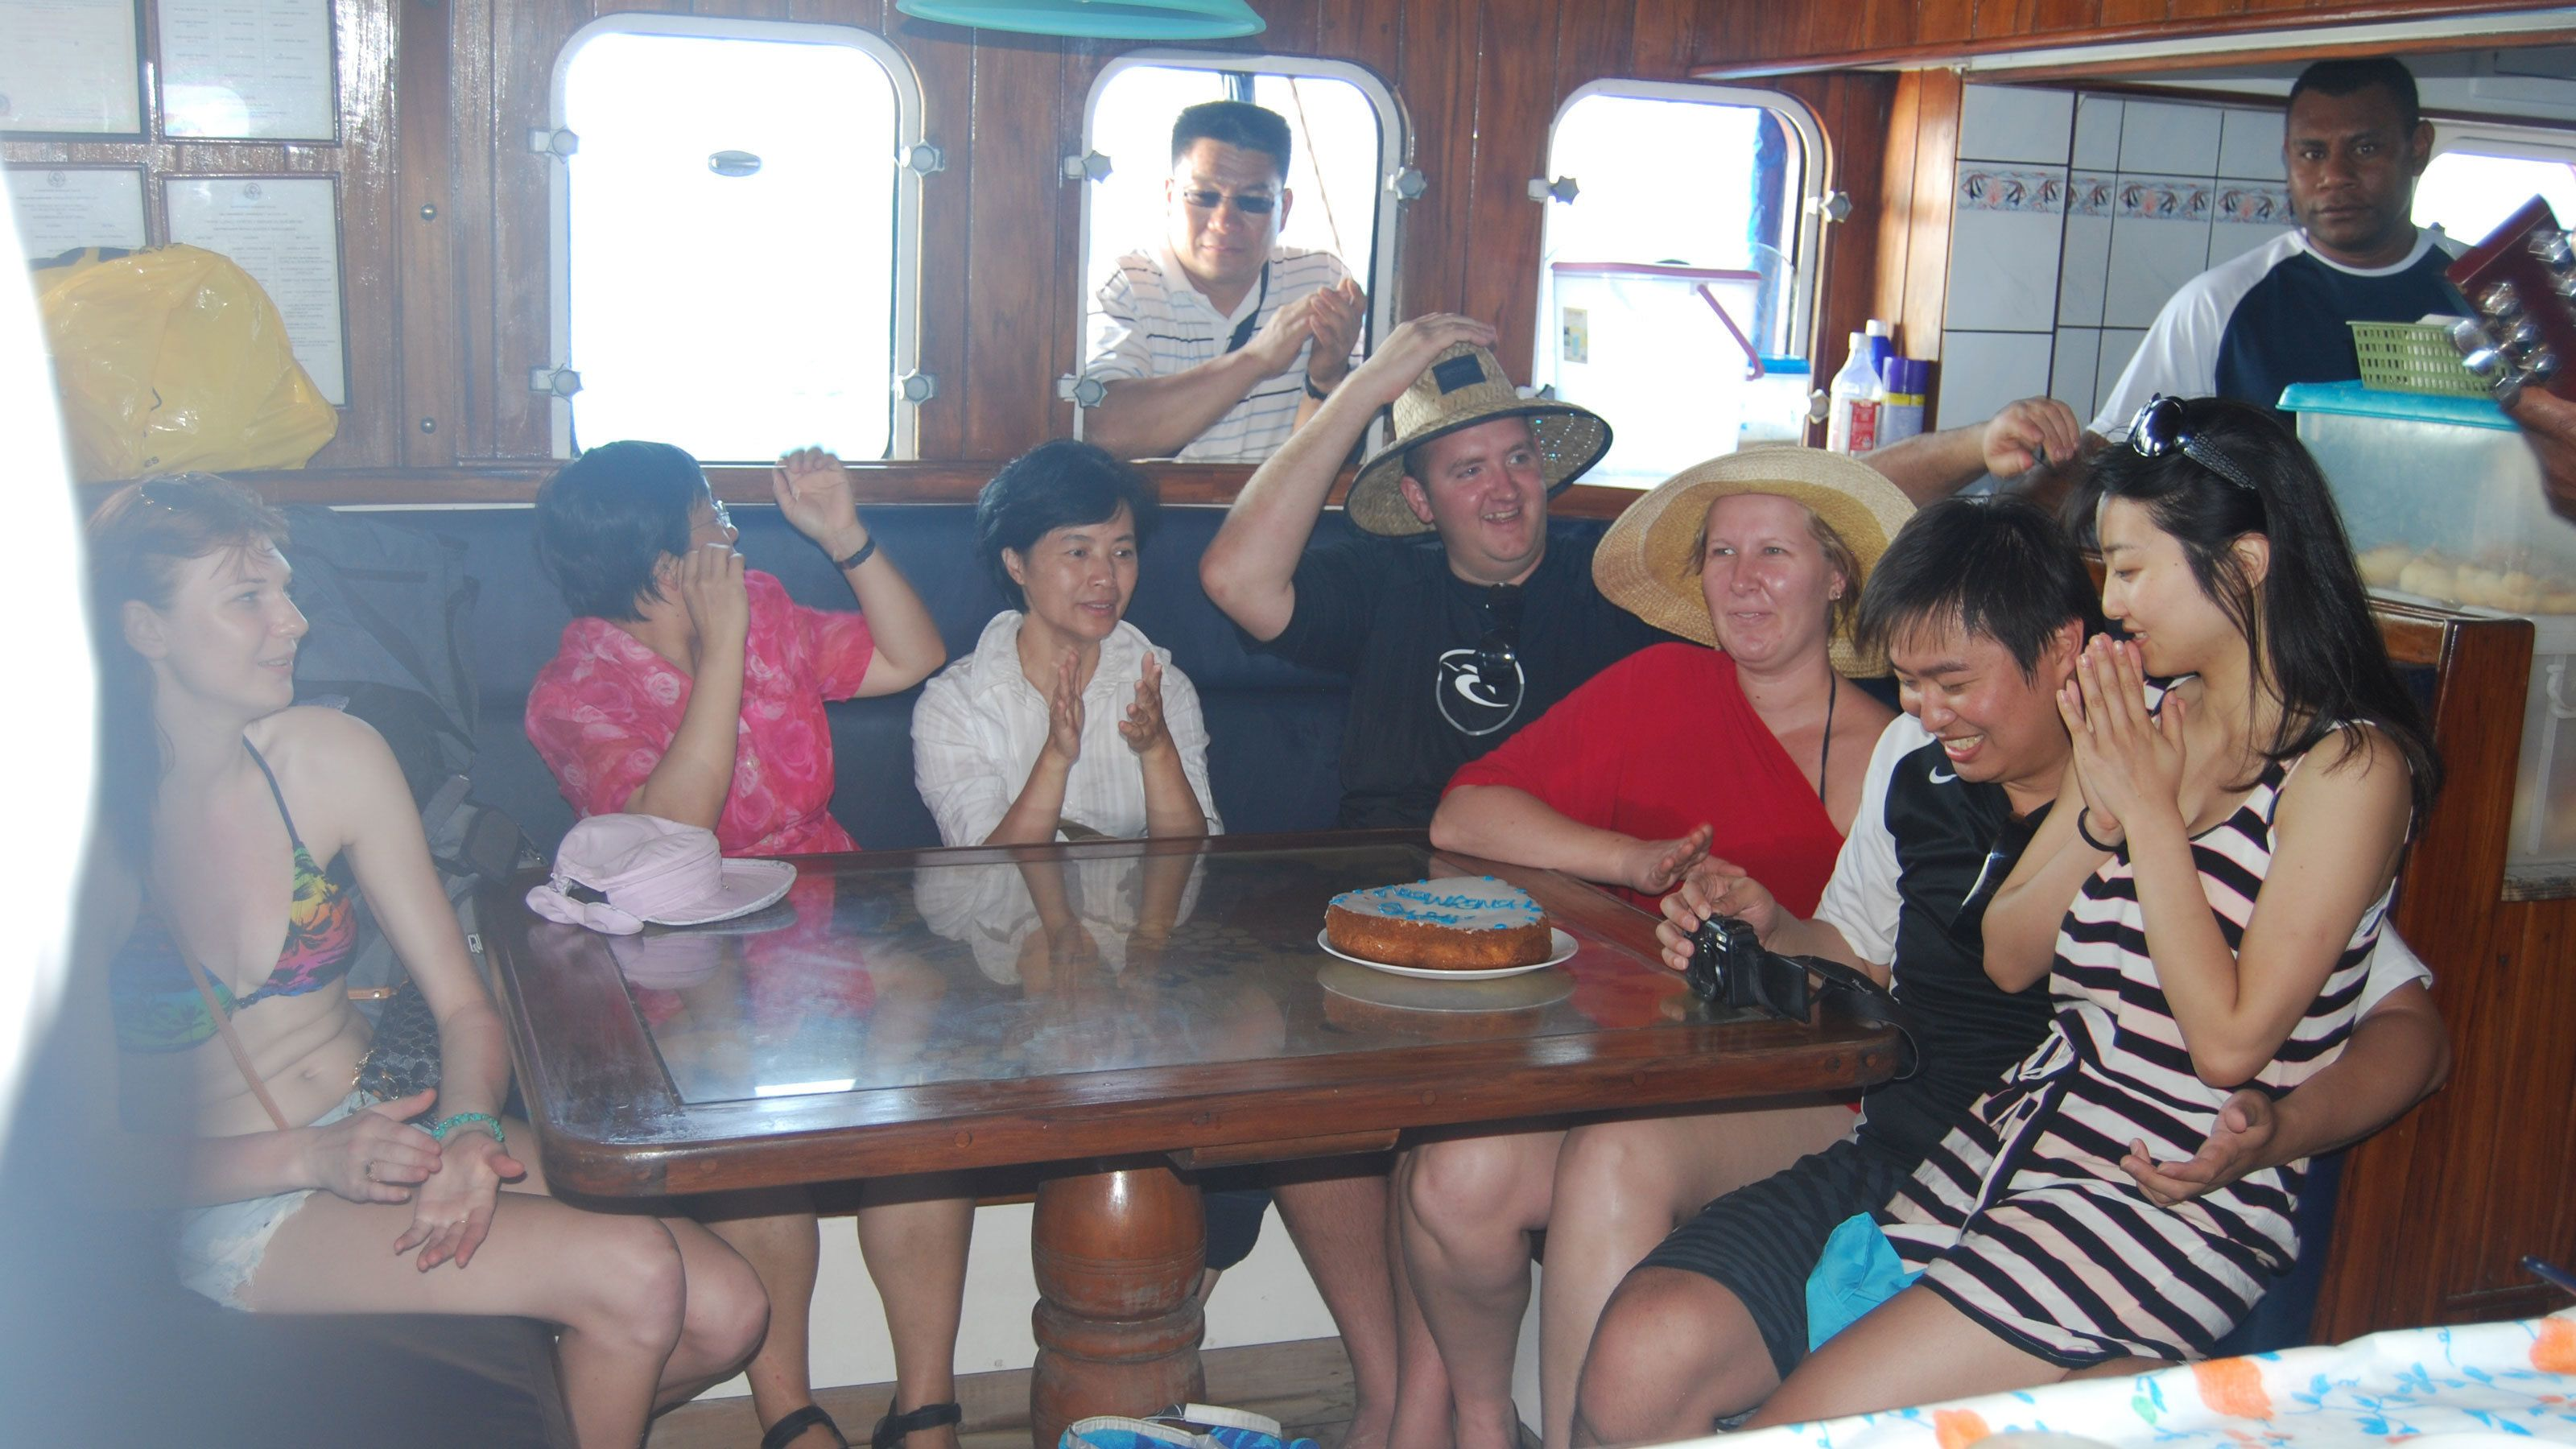 visitors celebrating with cake on the boat in Fiji